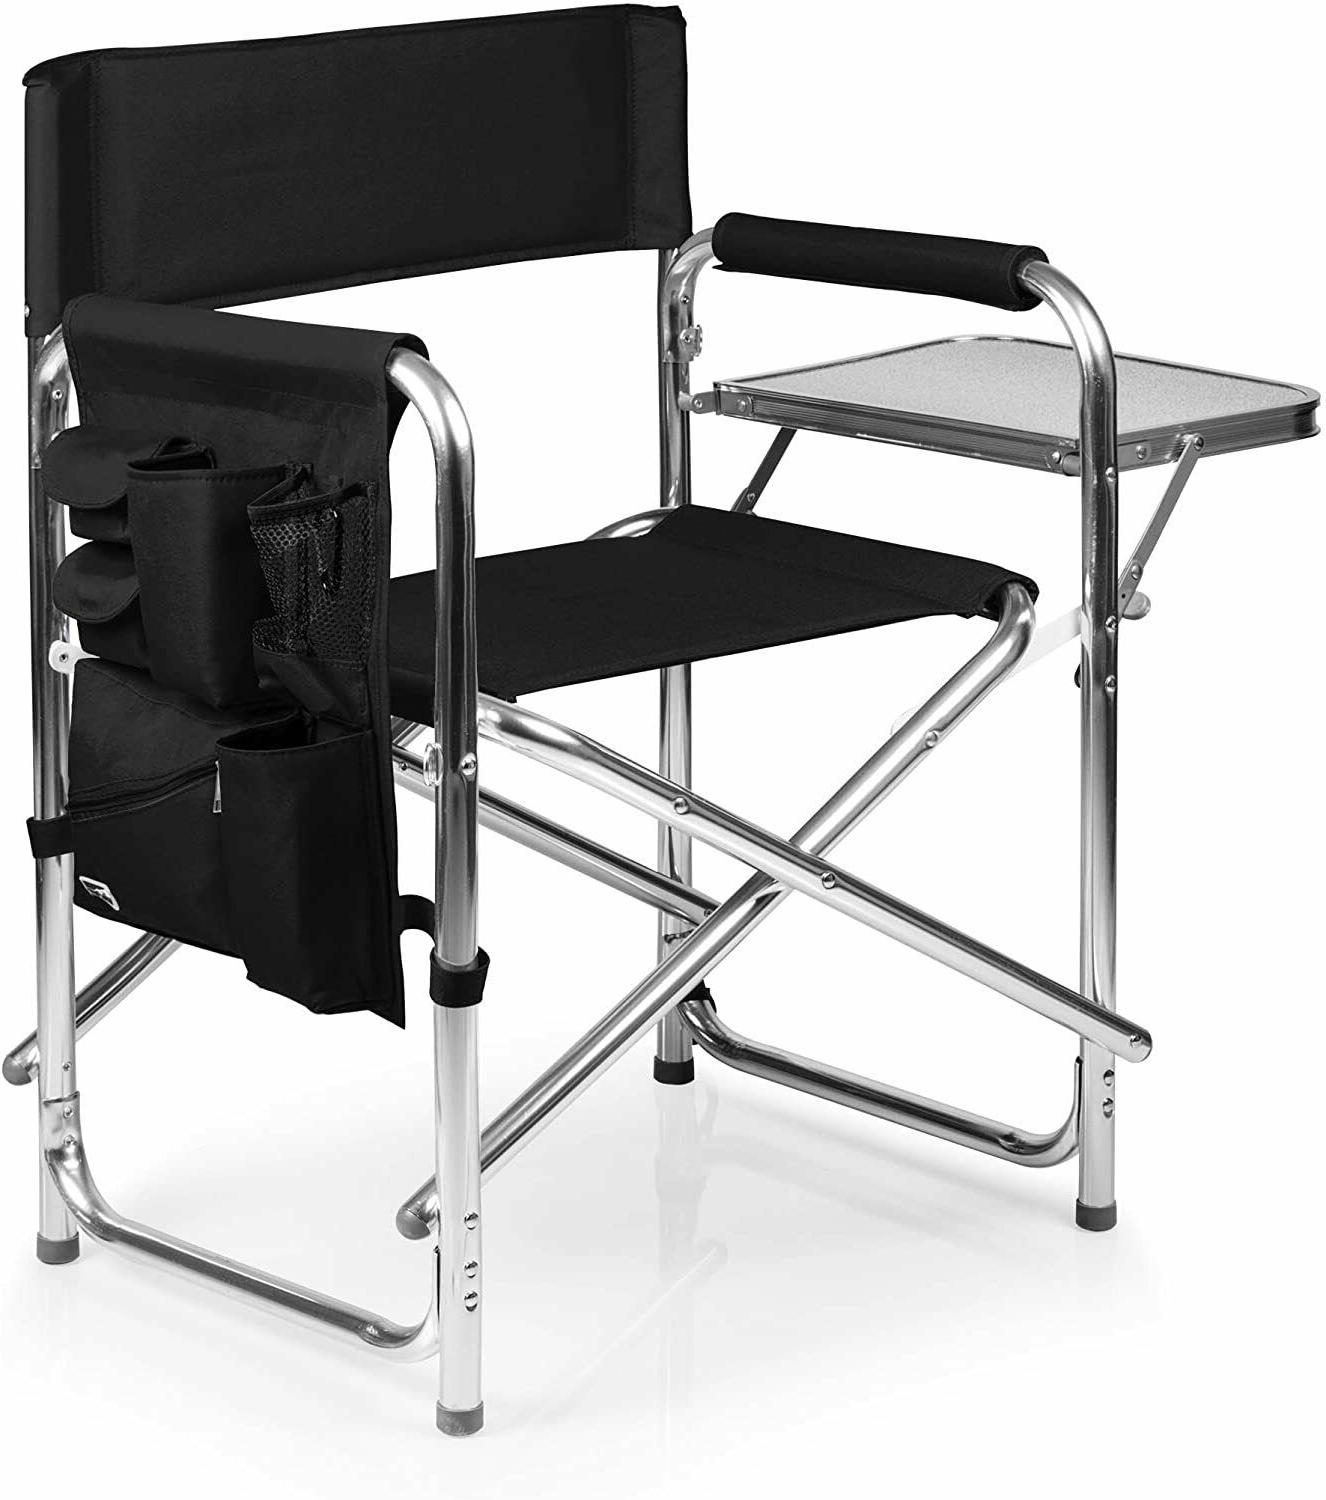 Portable Sports Chair with Insulated Table